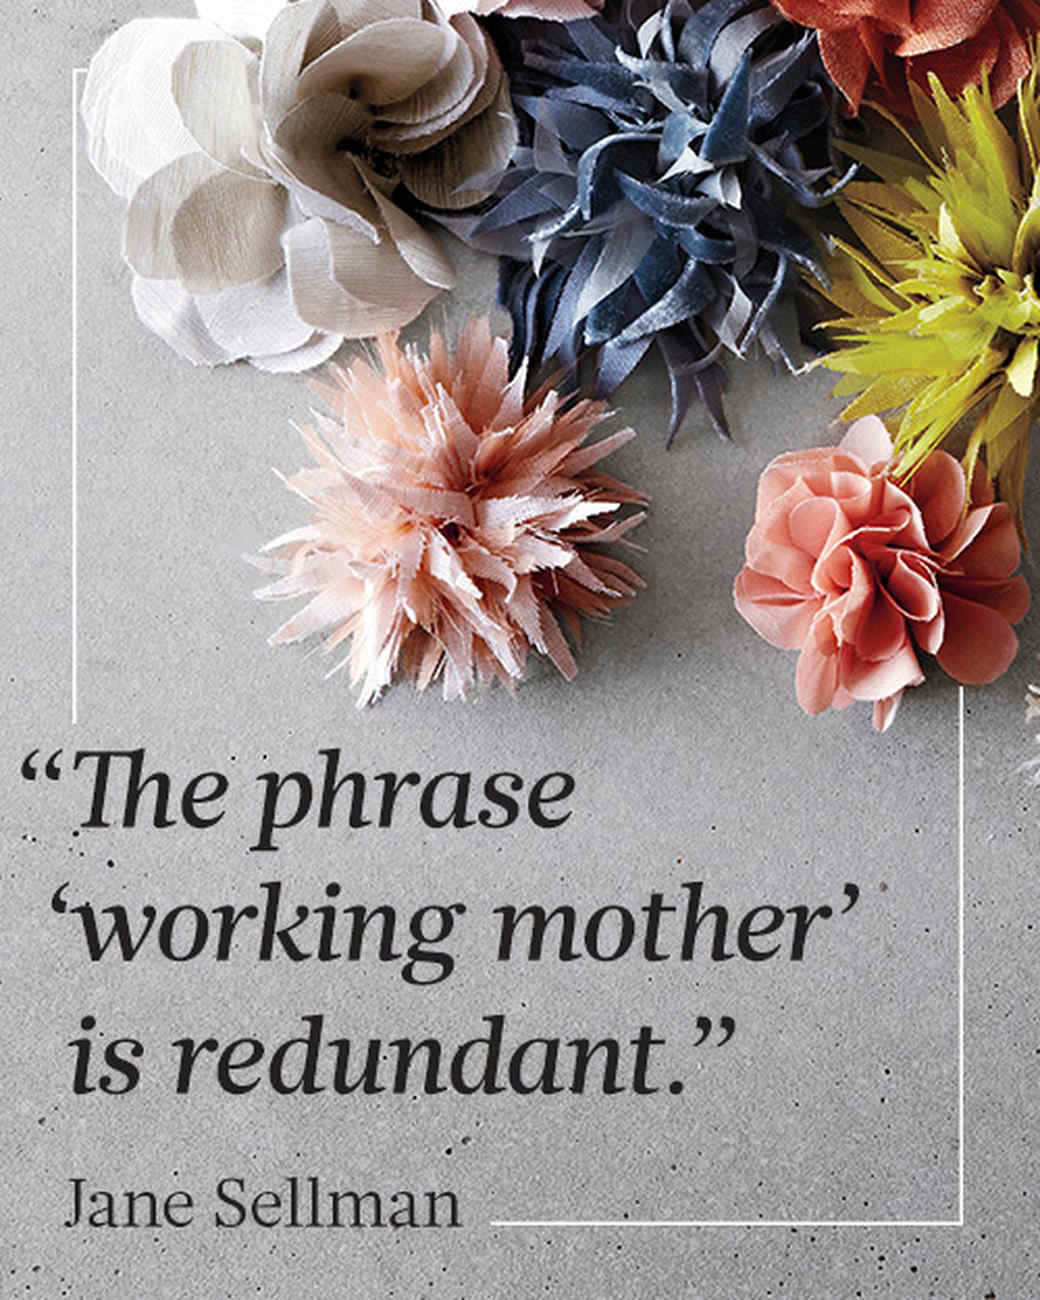 mothersdayquotes5-0315.jpg